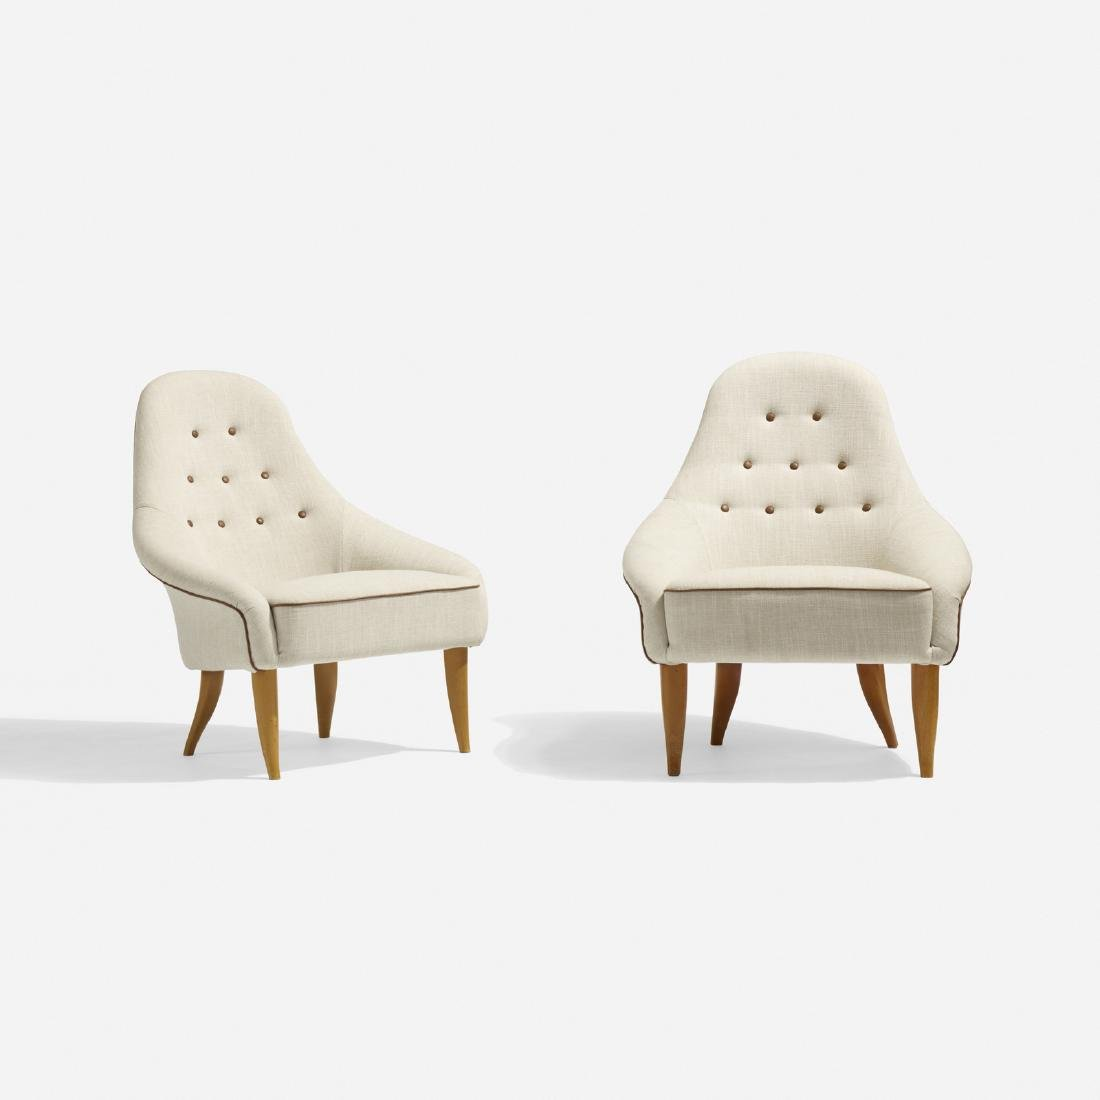 Kerstin Horlin-Holmquist, Eva lounge chairs, pair